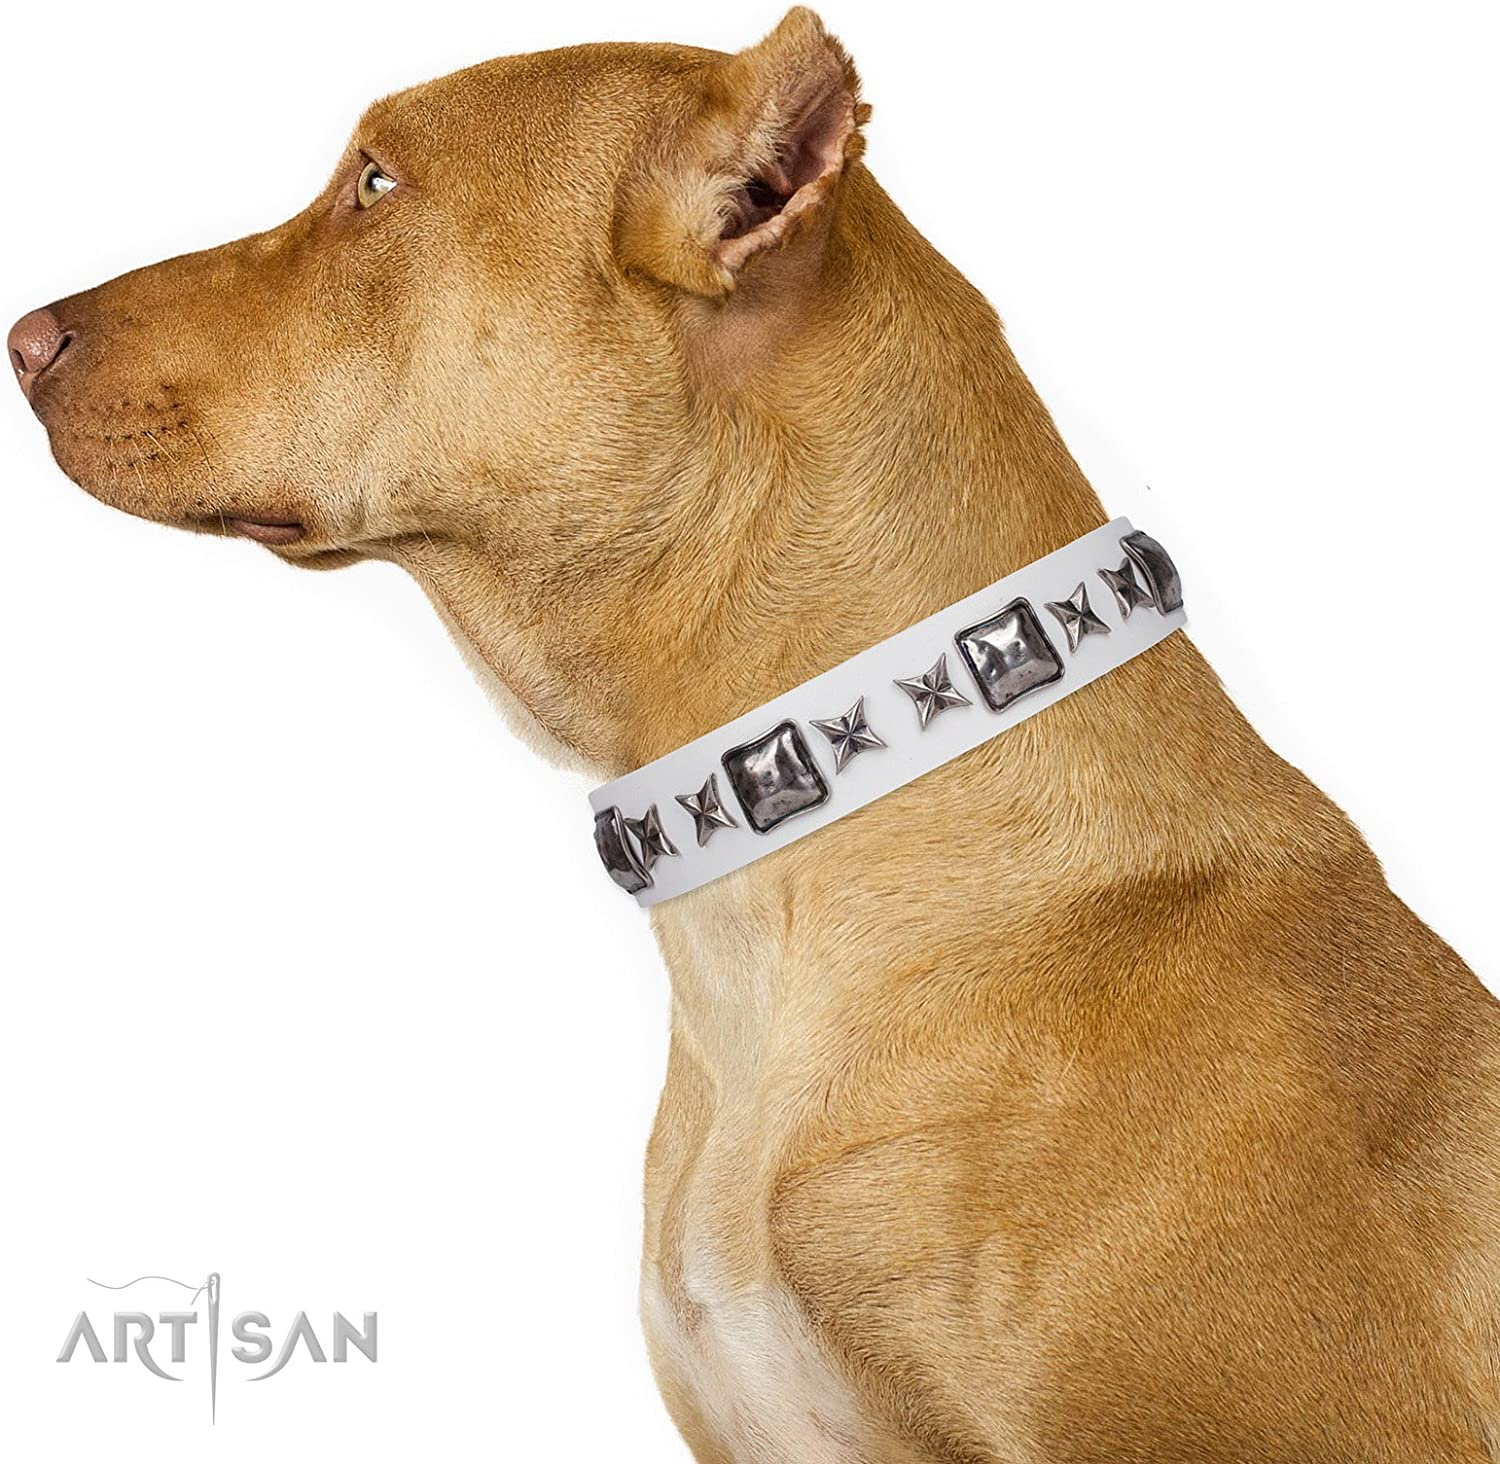 FDT Artisan 35 inch White Leather Dog Collar with Old Silver Like Decor Intergalactic Travelling 1 1 2 inch (40 mm) Wide